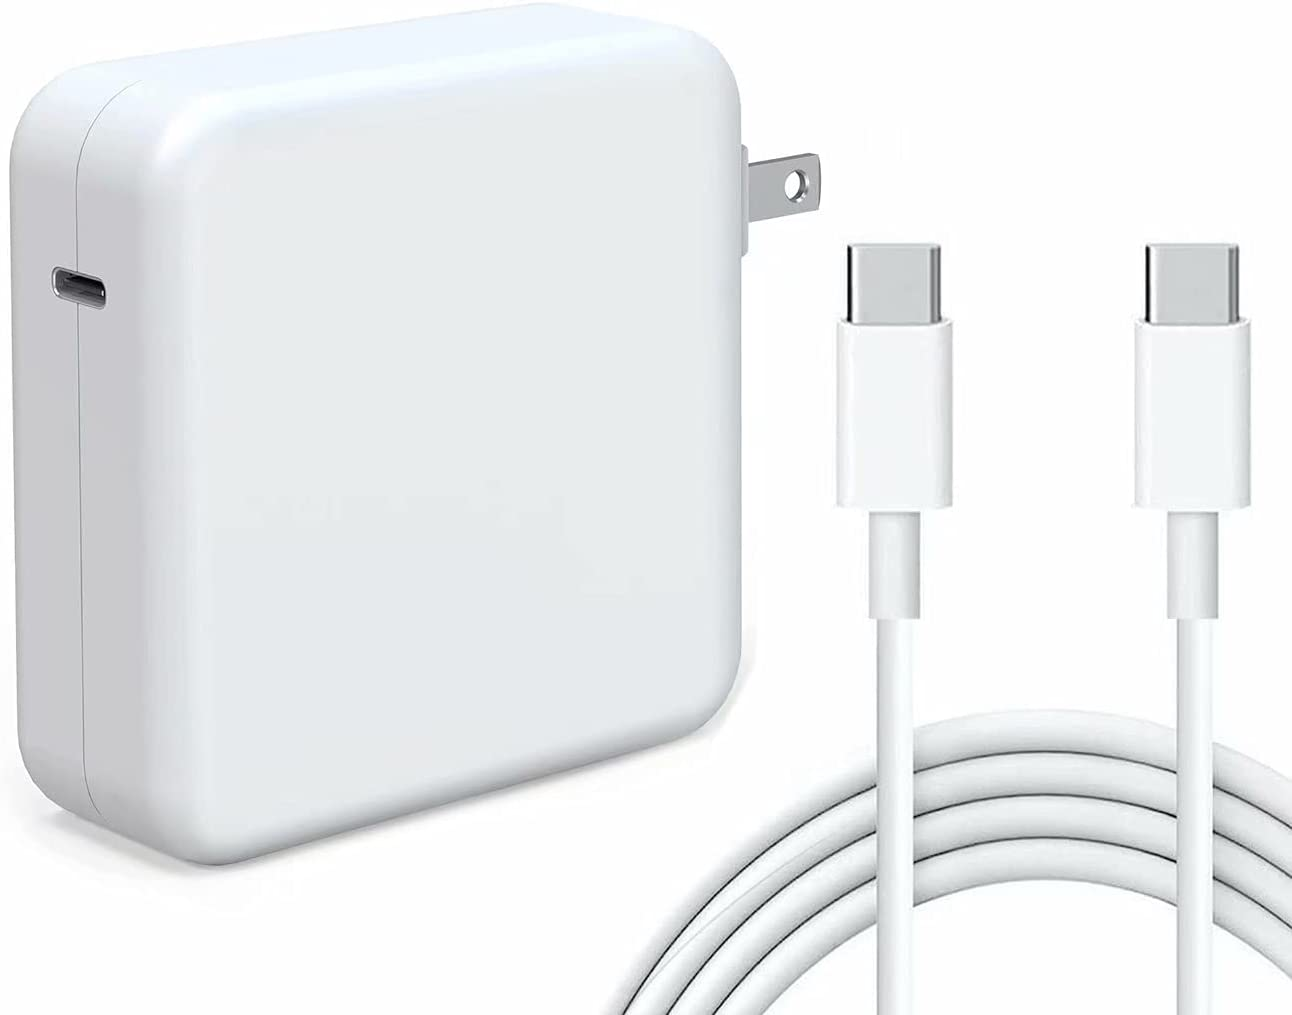 Kiolafy 87W USB C Power Adapter, Compatible with MacBook Pro Charger 13 15 16 inch 2020 2019 2018, Works with USB C 87W 61W PD Power Charger, Included USB-C to USB-C Charge Cable (6.6ft/2m)